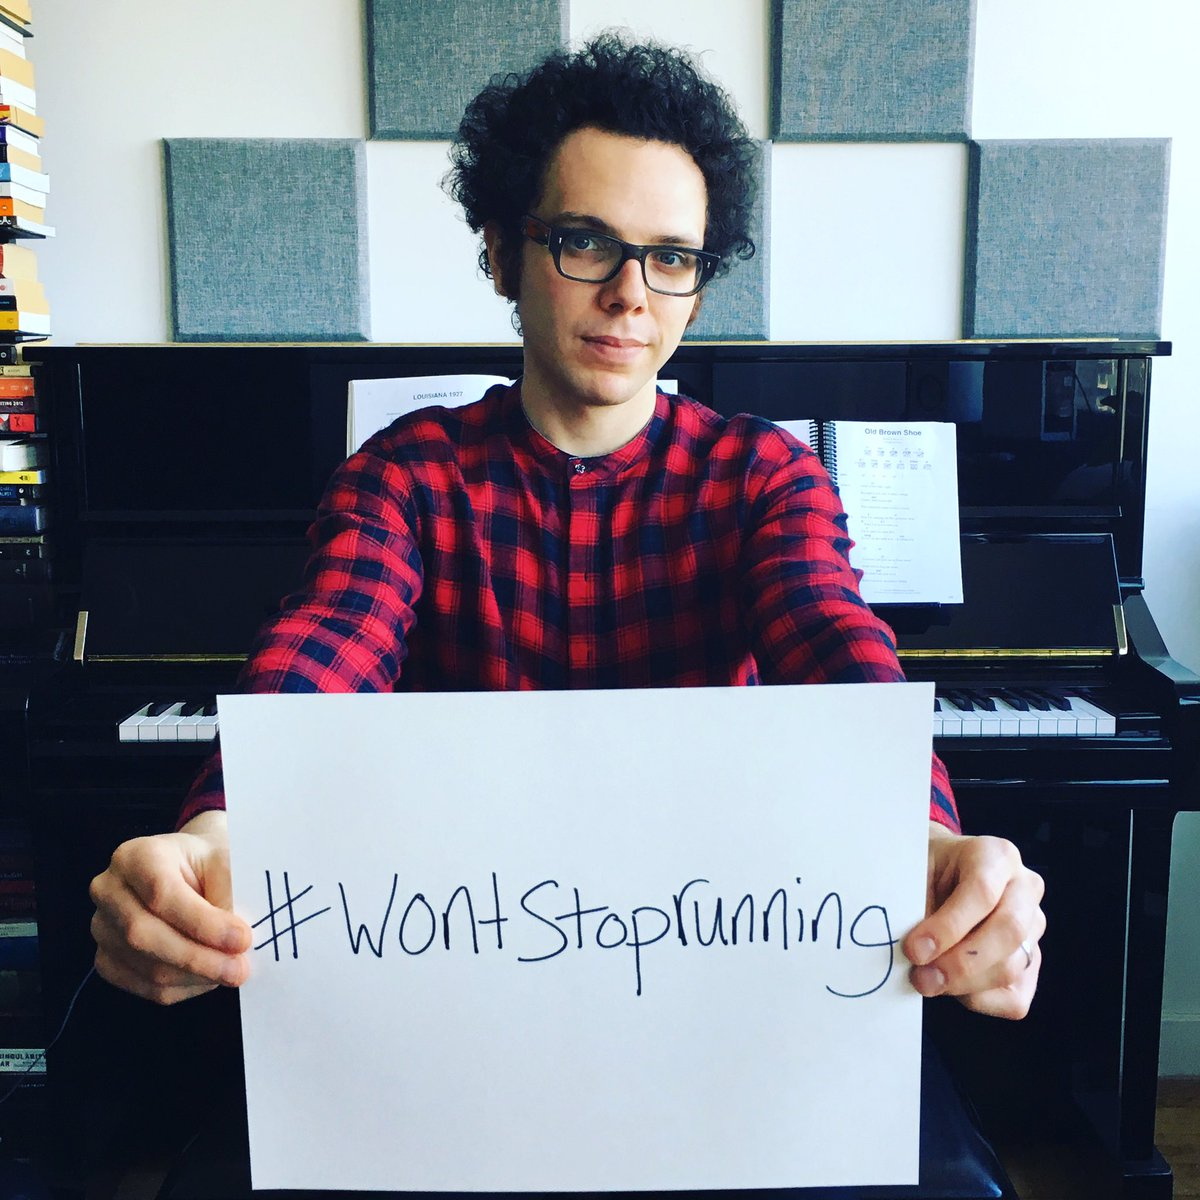 .@itsmechadking is the strongest and most positive and inspiring person I know. This is for you #wontstoprunning https://t.co/efnlUmPLl4